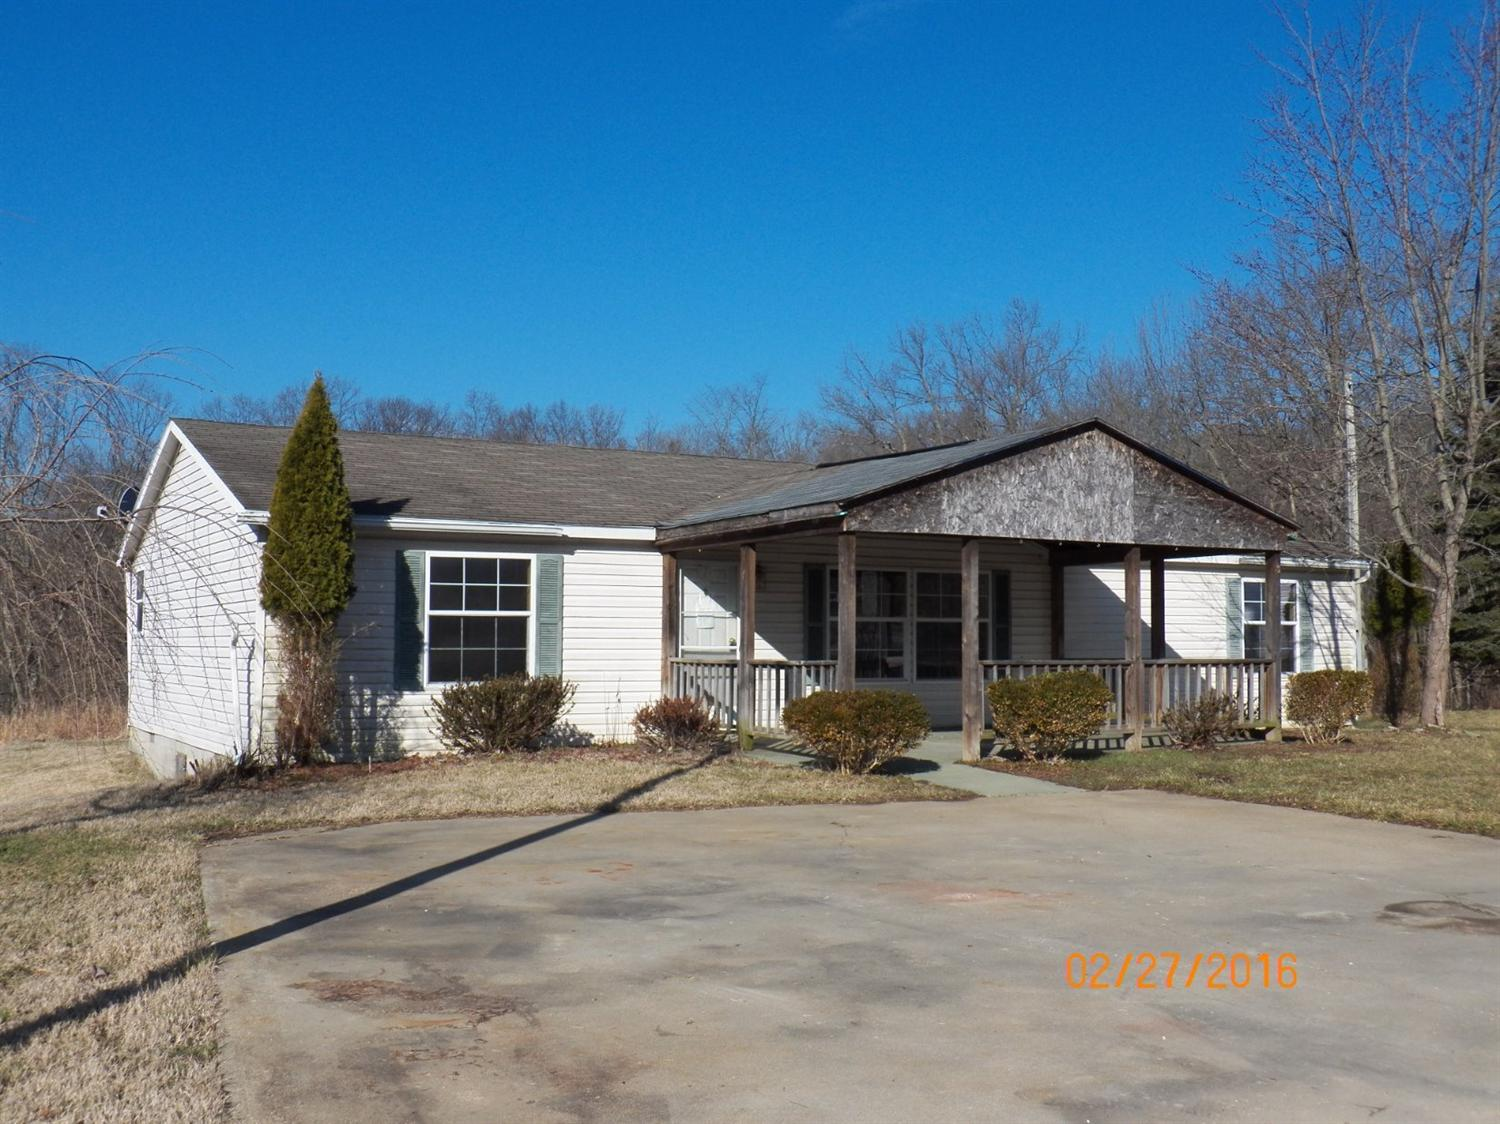 Photo 1 for 6711 Utz Dr Burlington, KY 41005